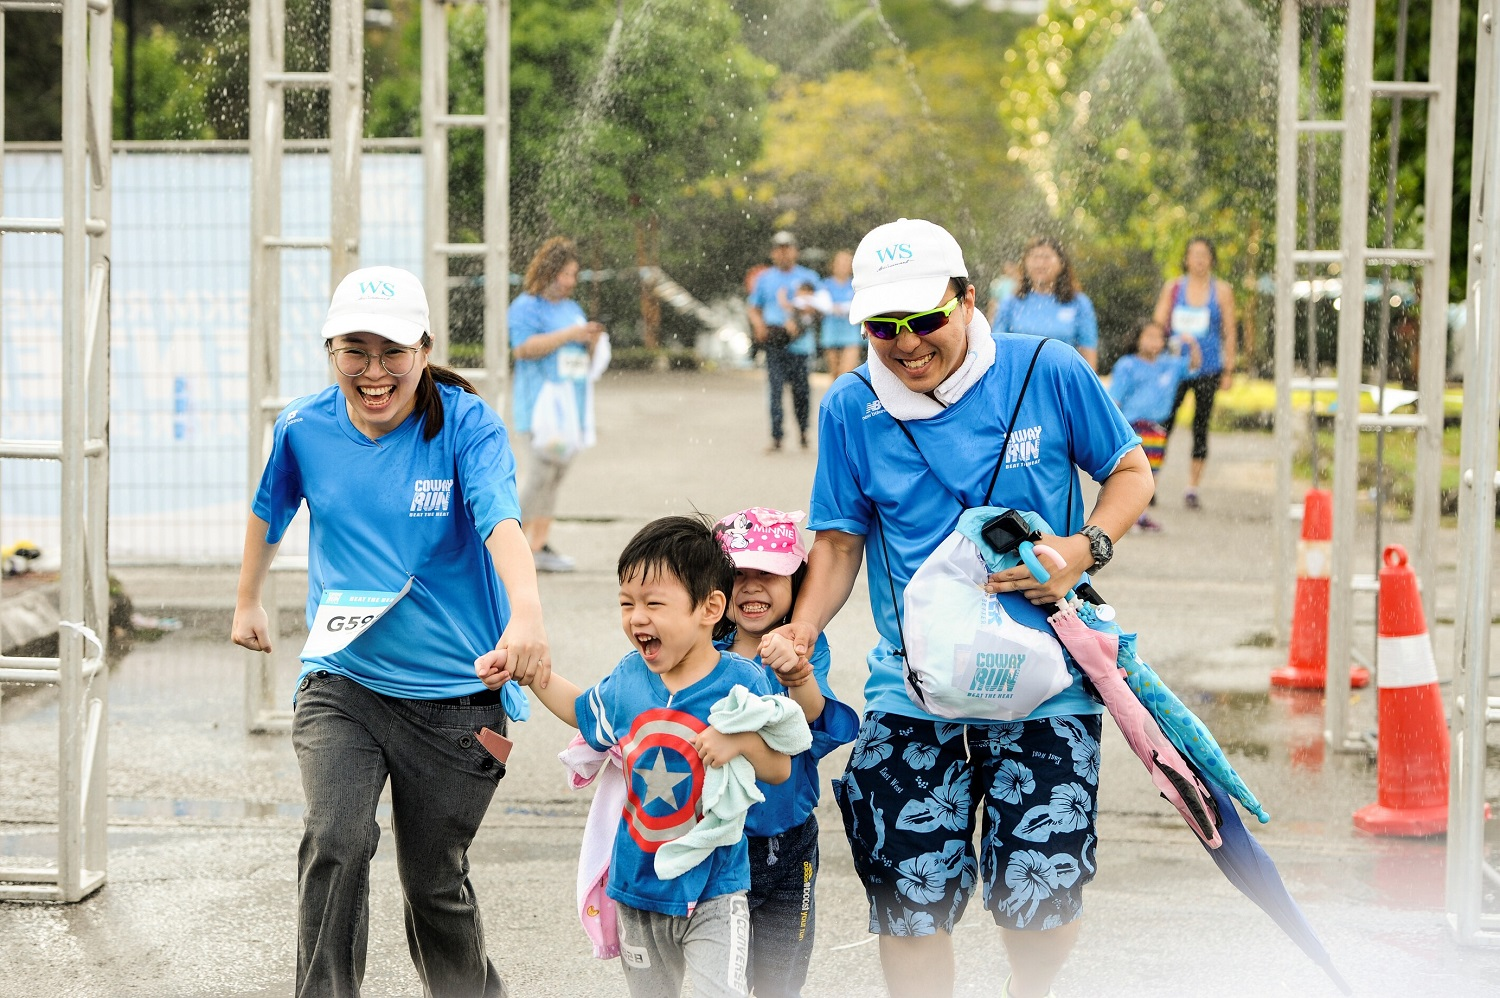 Get Fit With The Fun Coway Run 2020 - Life is Ohsem